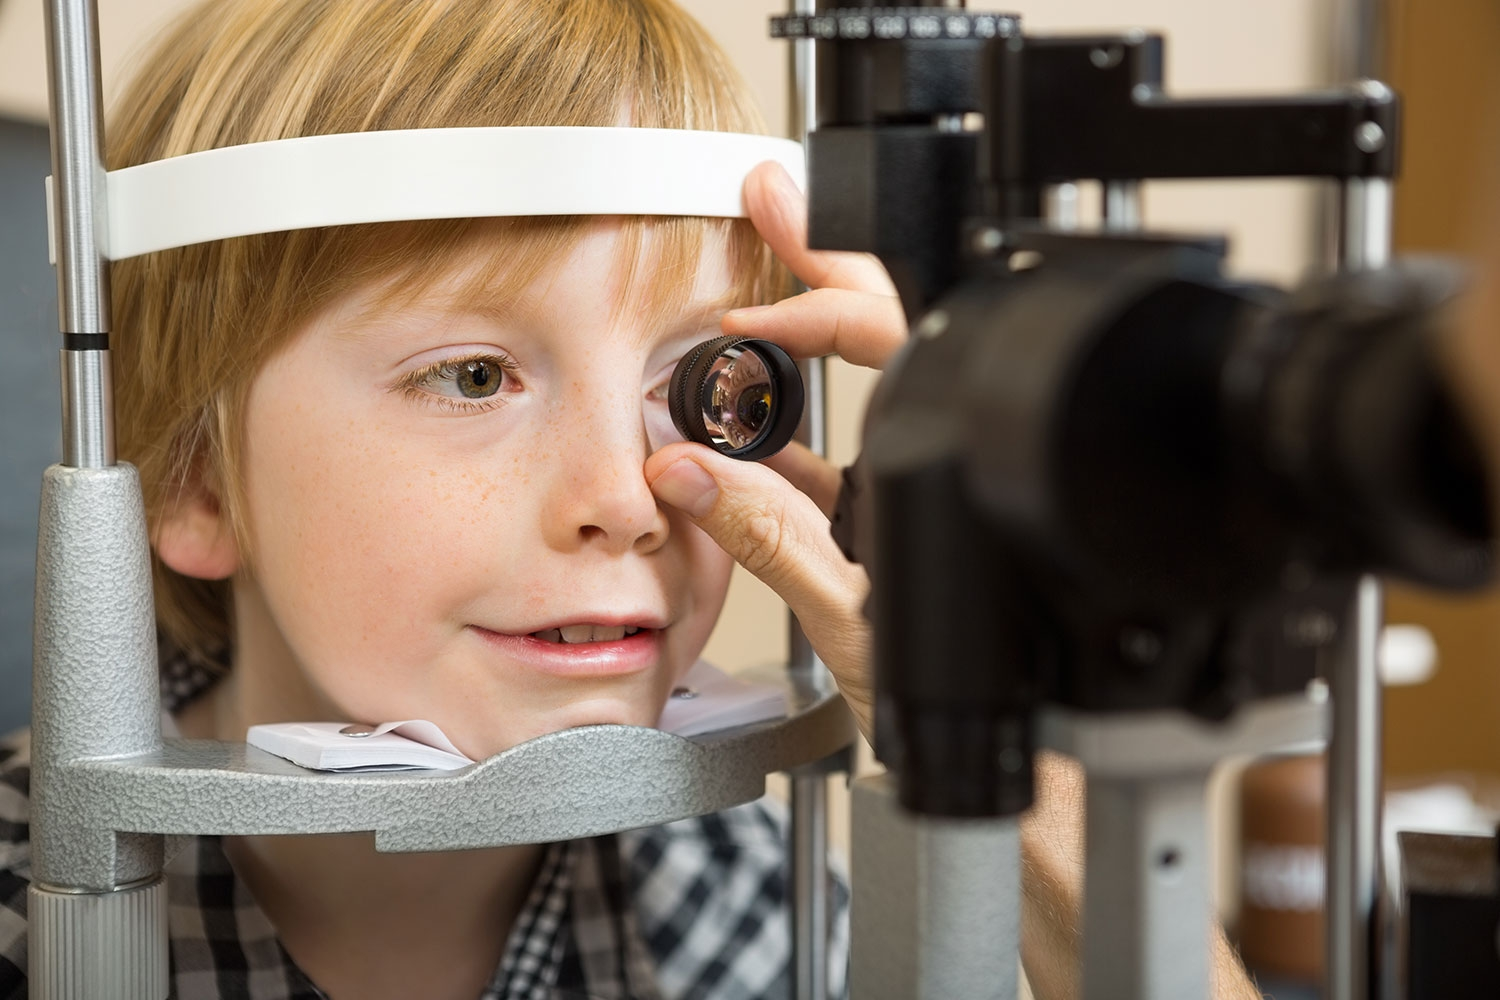 c2233eb2d8b7 ... a special interest in providing eyecare for children of all ages. We  only fit proper paediatric designed frames ensuring that your child s eyes  have the ...